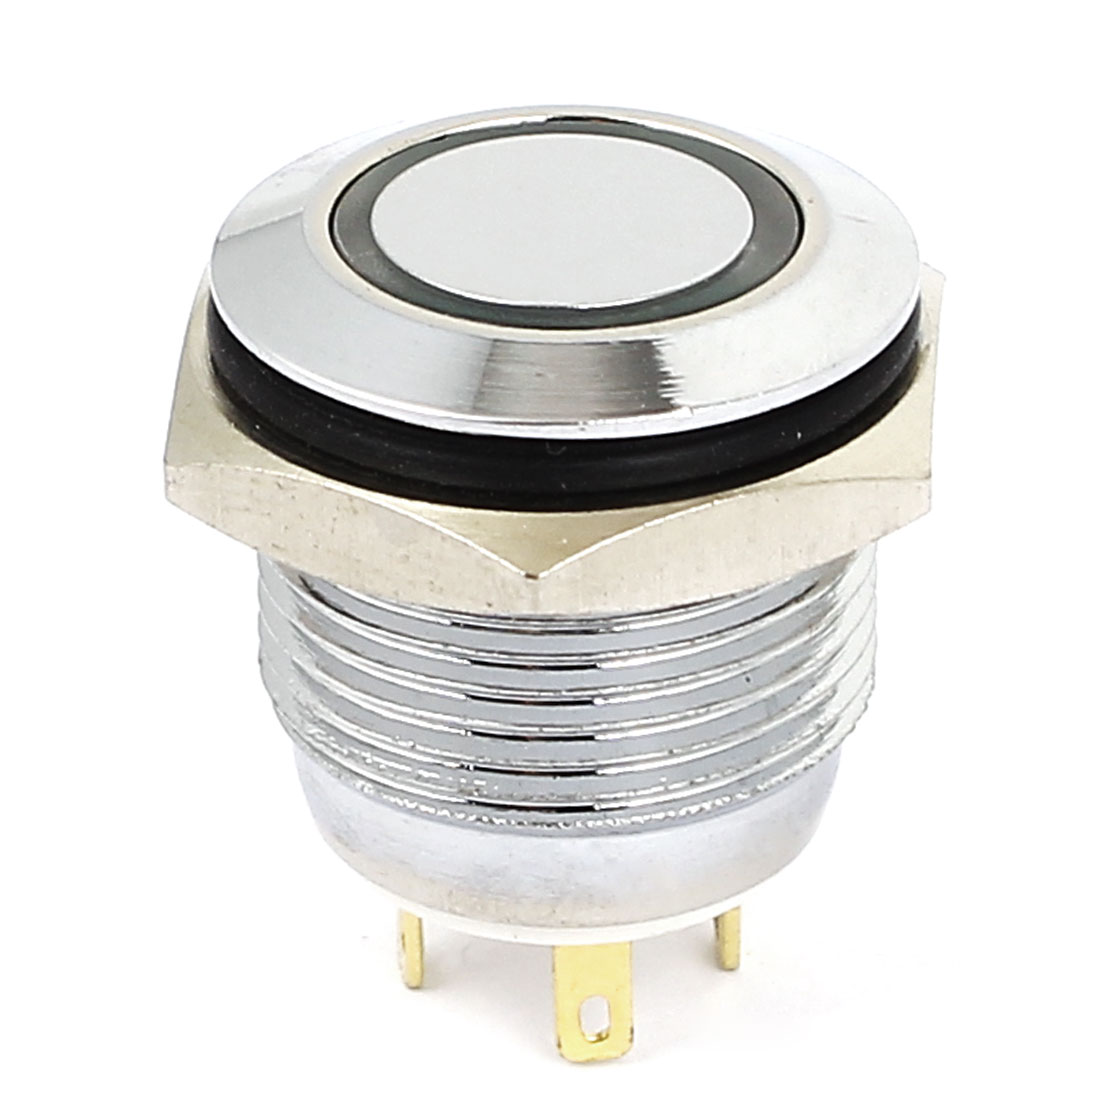 3V 16mm Dia Green LED Lamp Chromium Plated Brass Momentary Pushbutton Switch